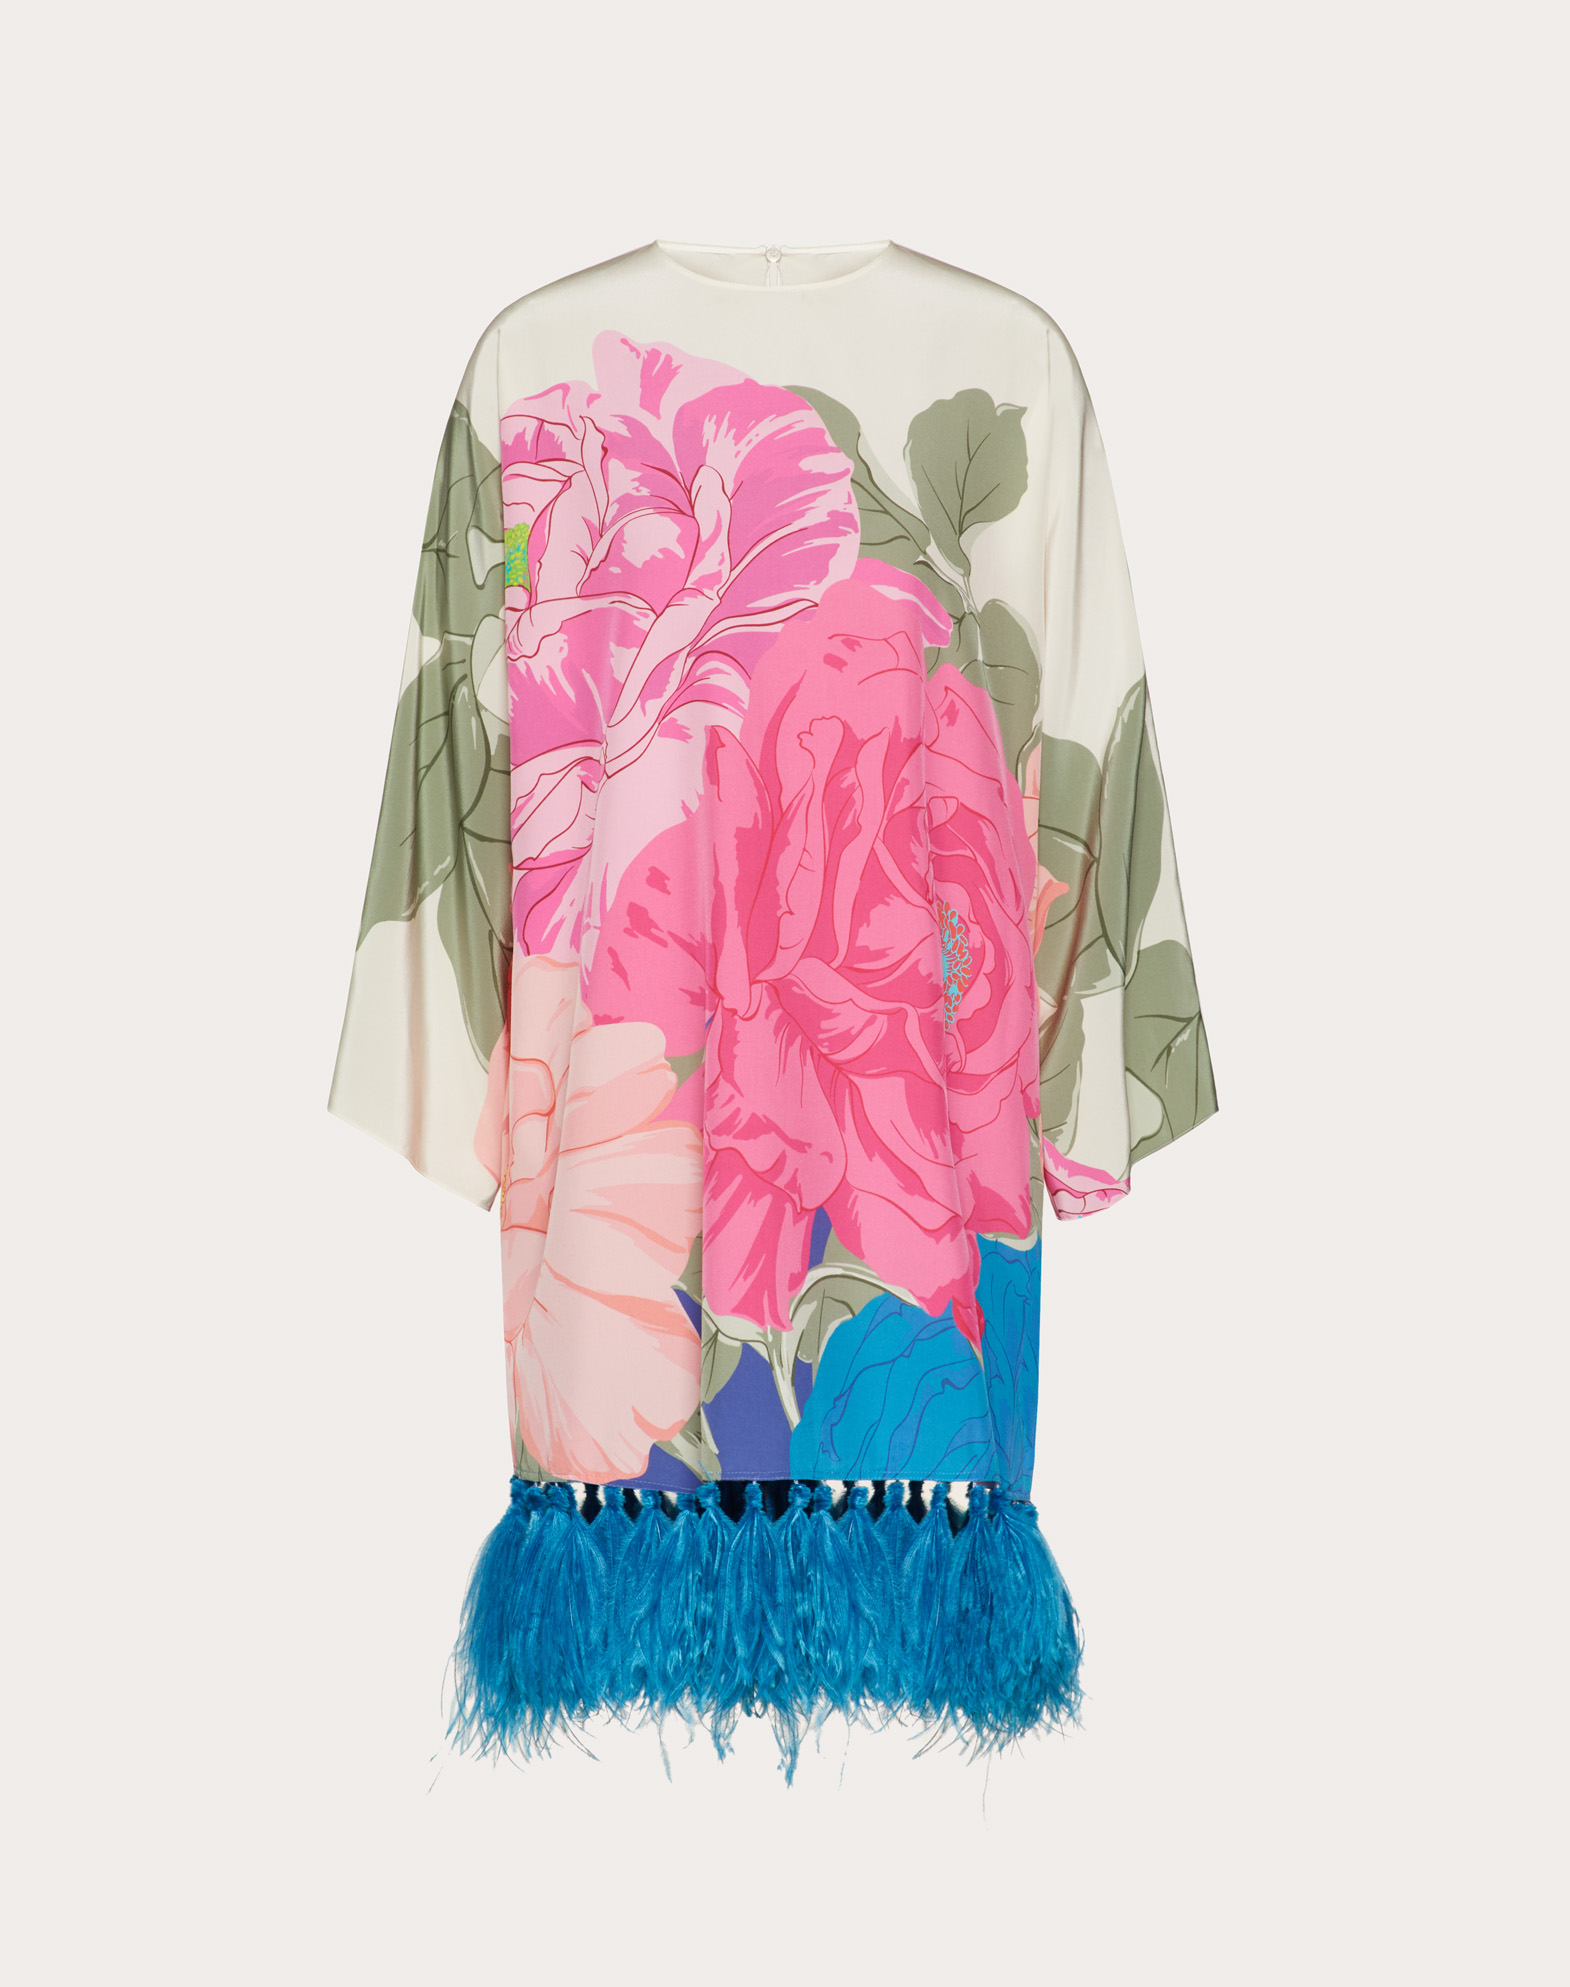 Printed Crepe de Chine Dress with Feathers